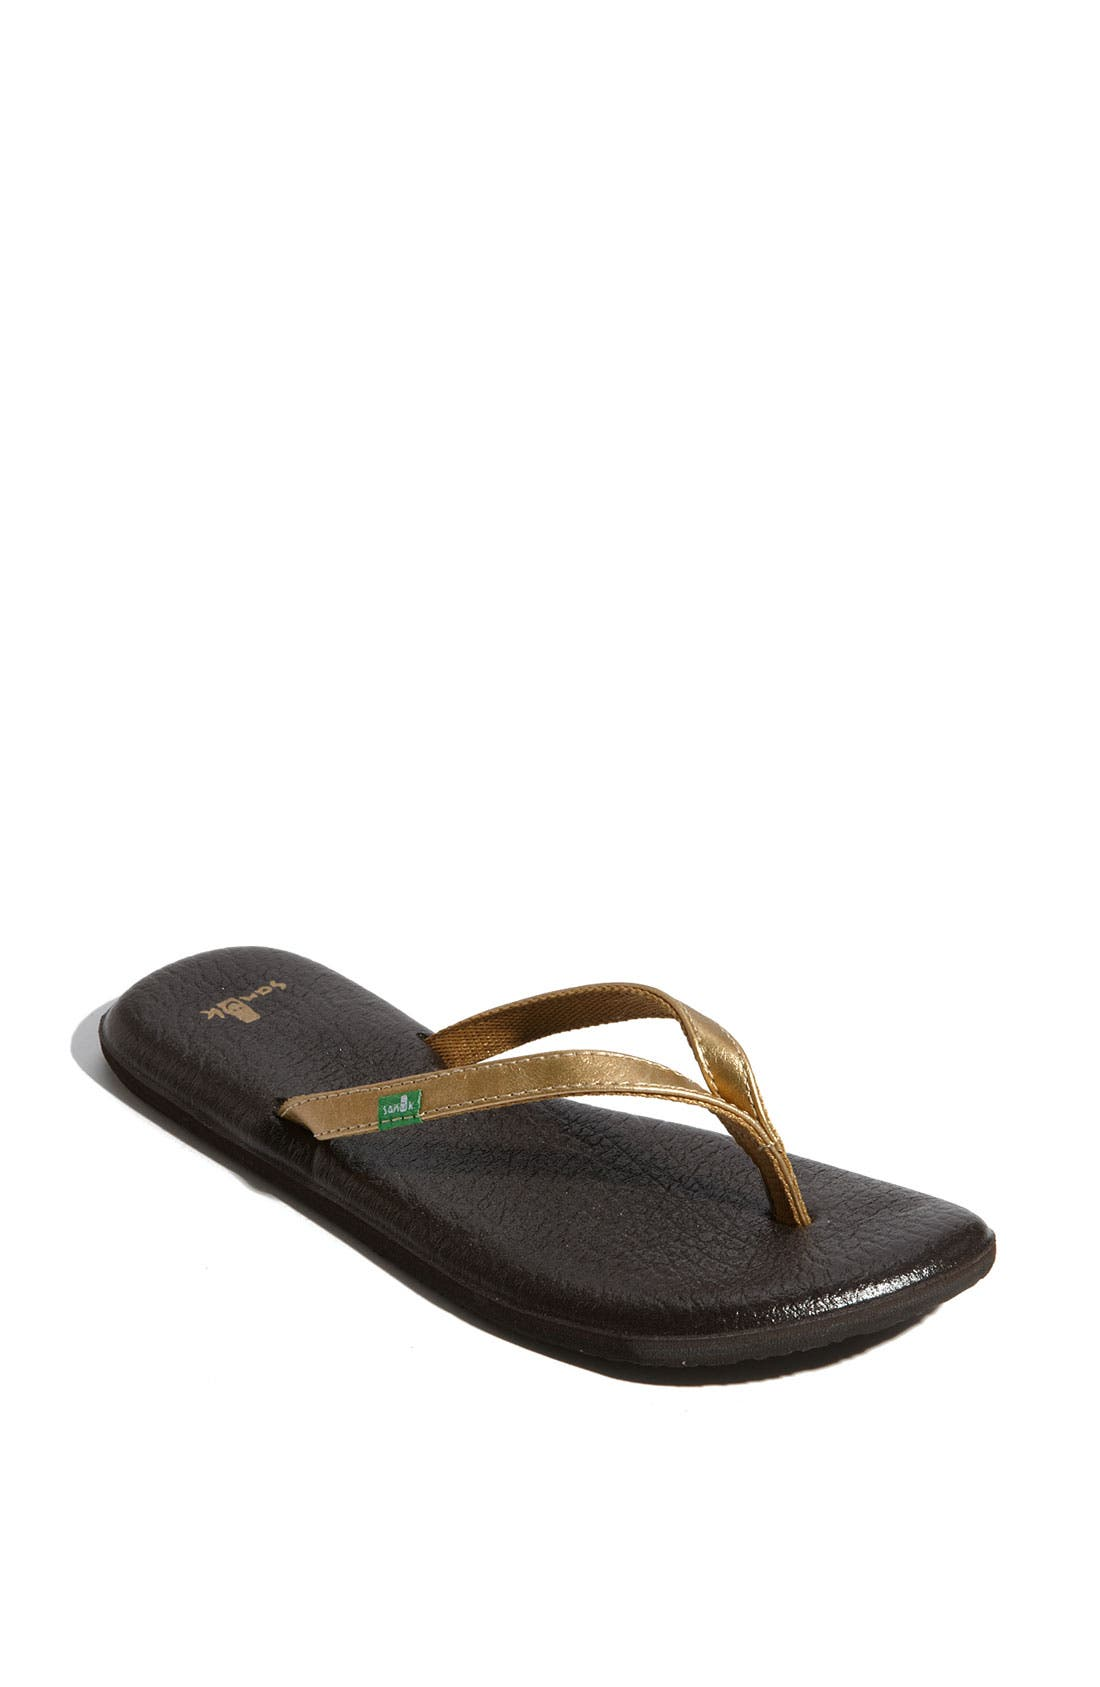 Main Image - Sanuk 'Yoga Spree' Flip Flop (Women)